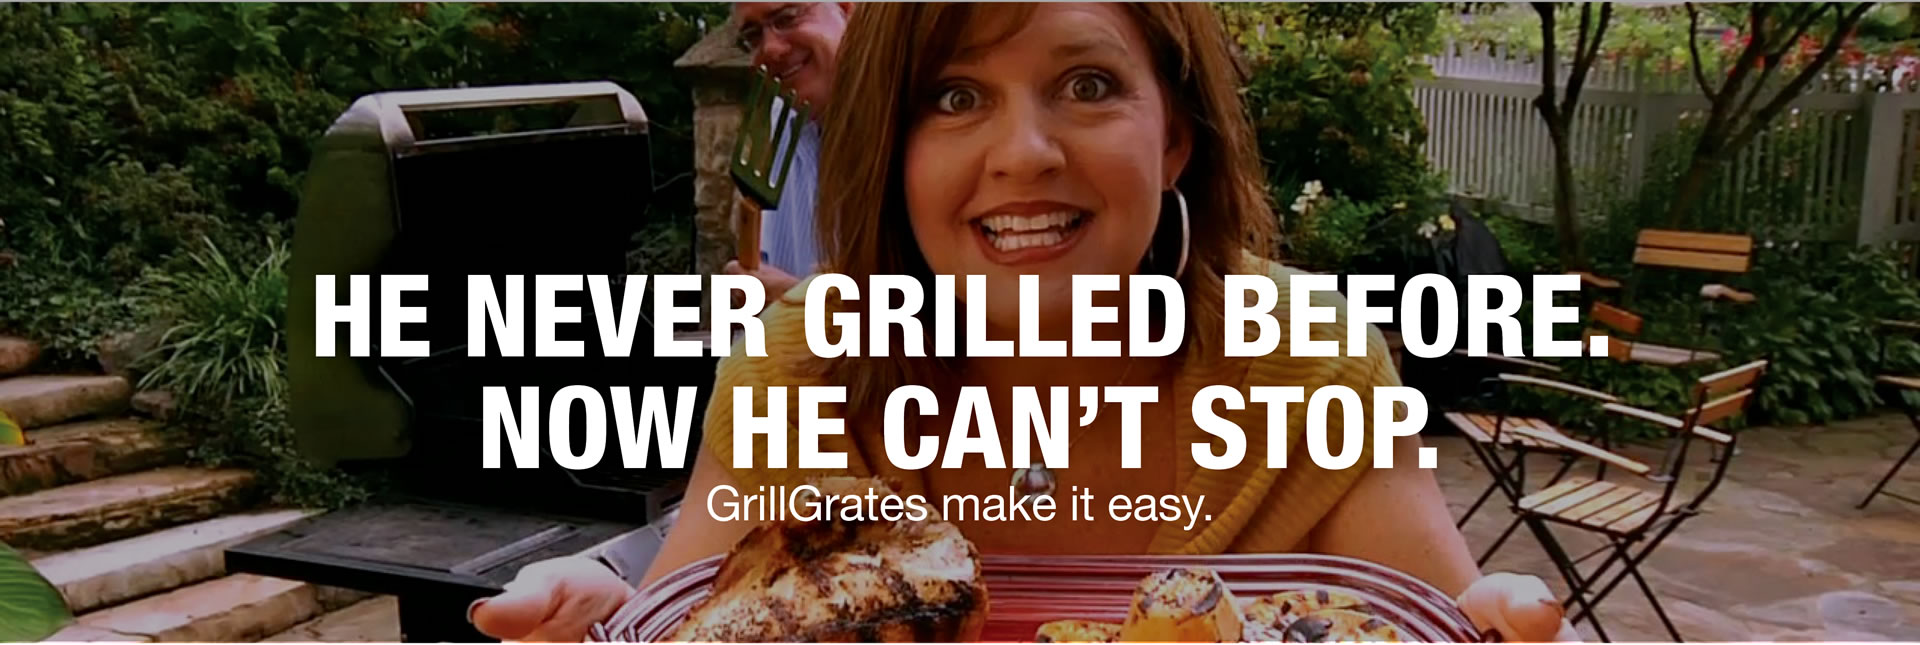 grill_lady